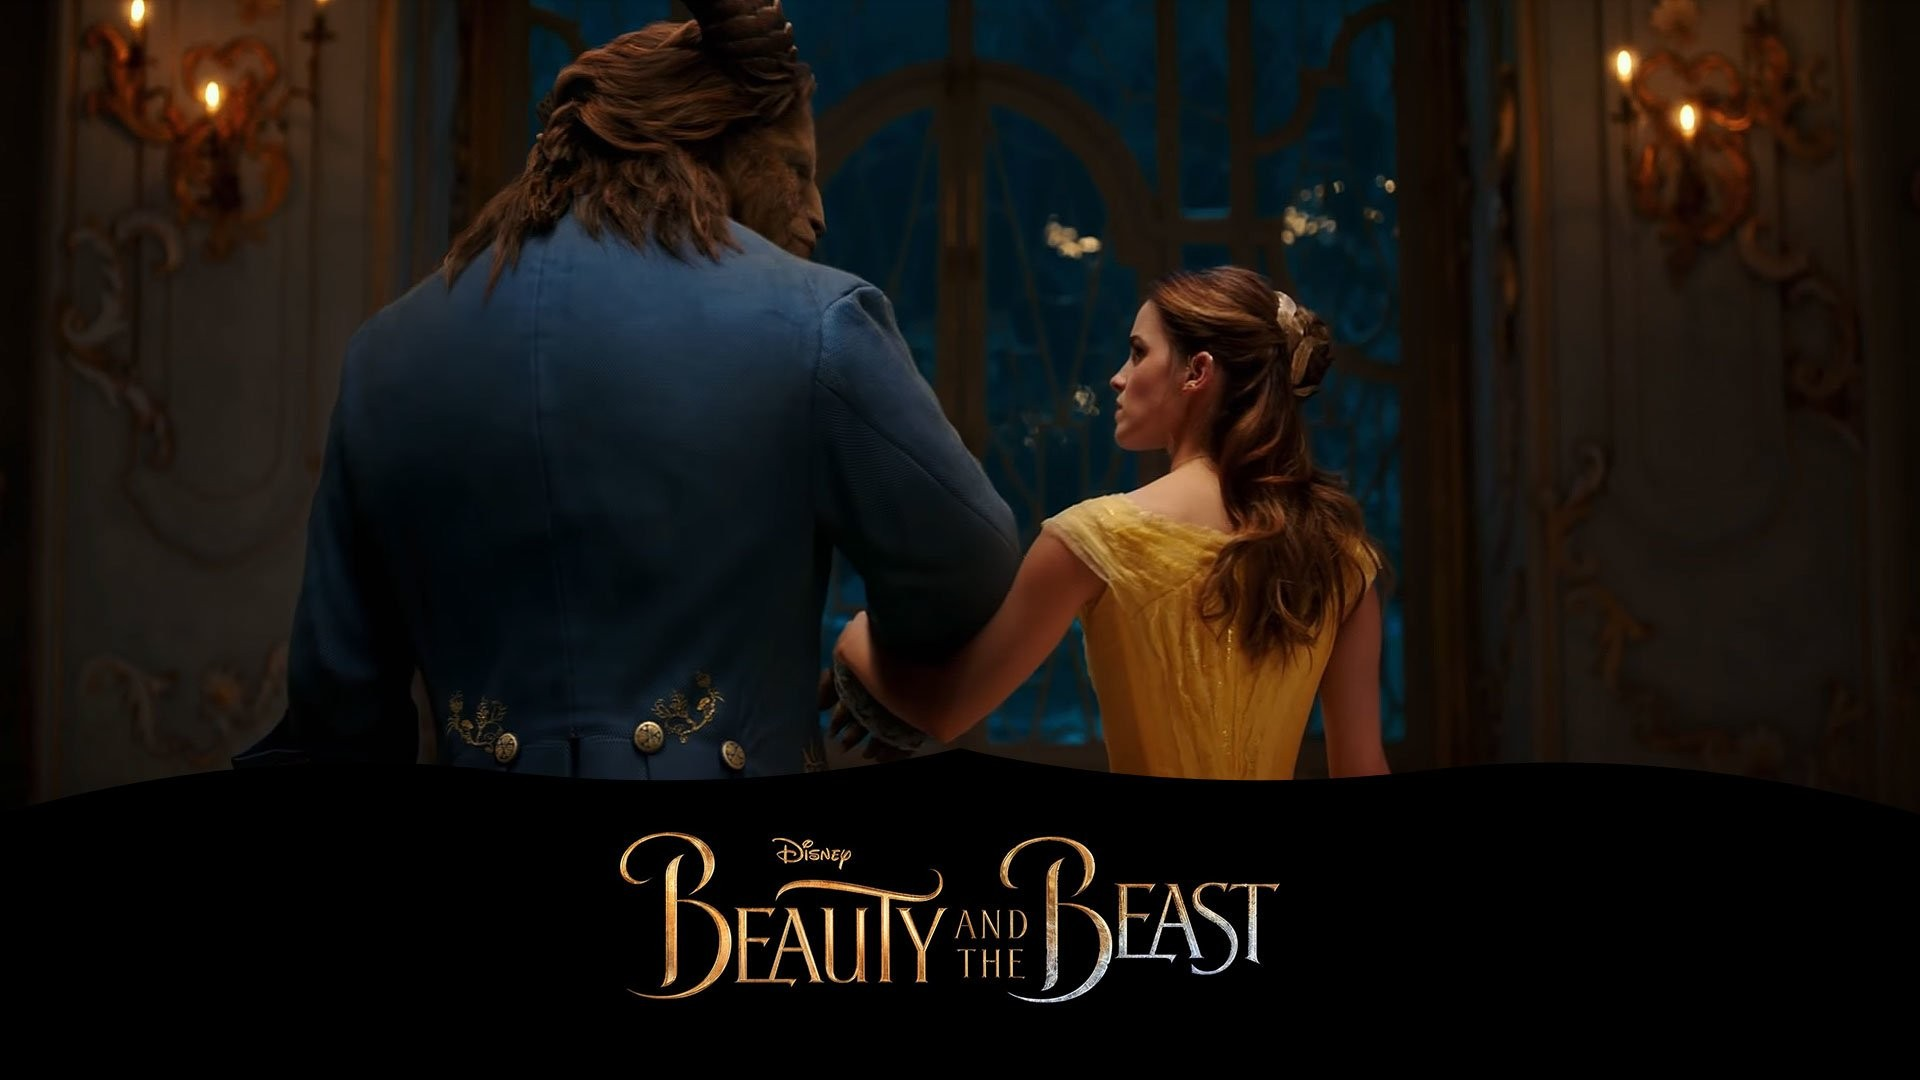 Beauty and the Beast is an American liveaction musical romantic fantasy film directed by Bill Condon and distributed by Walt Disney Pictures It is a remake of the